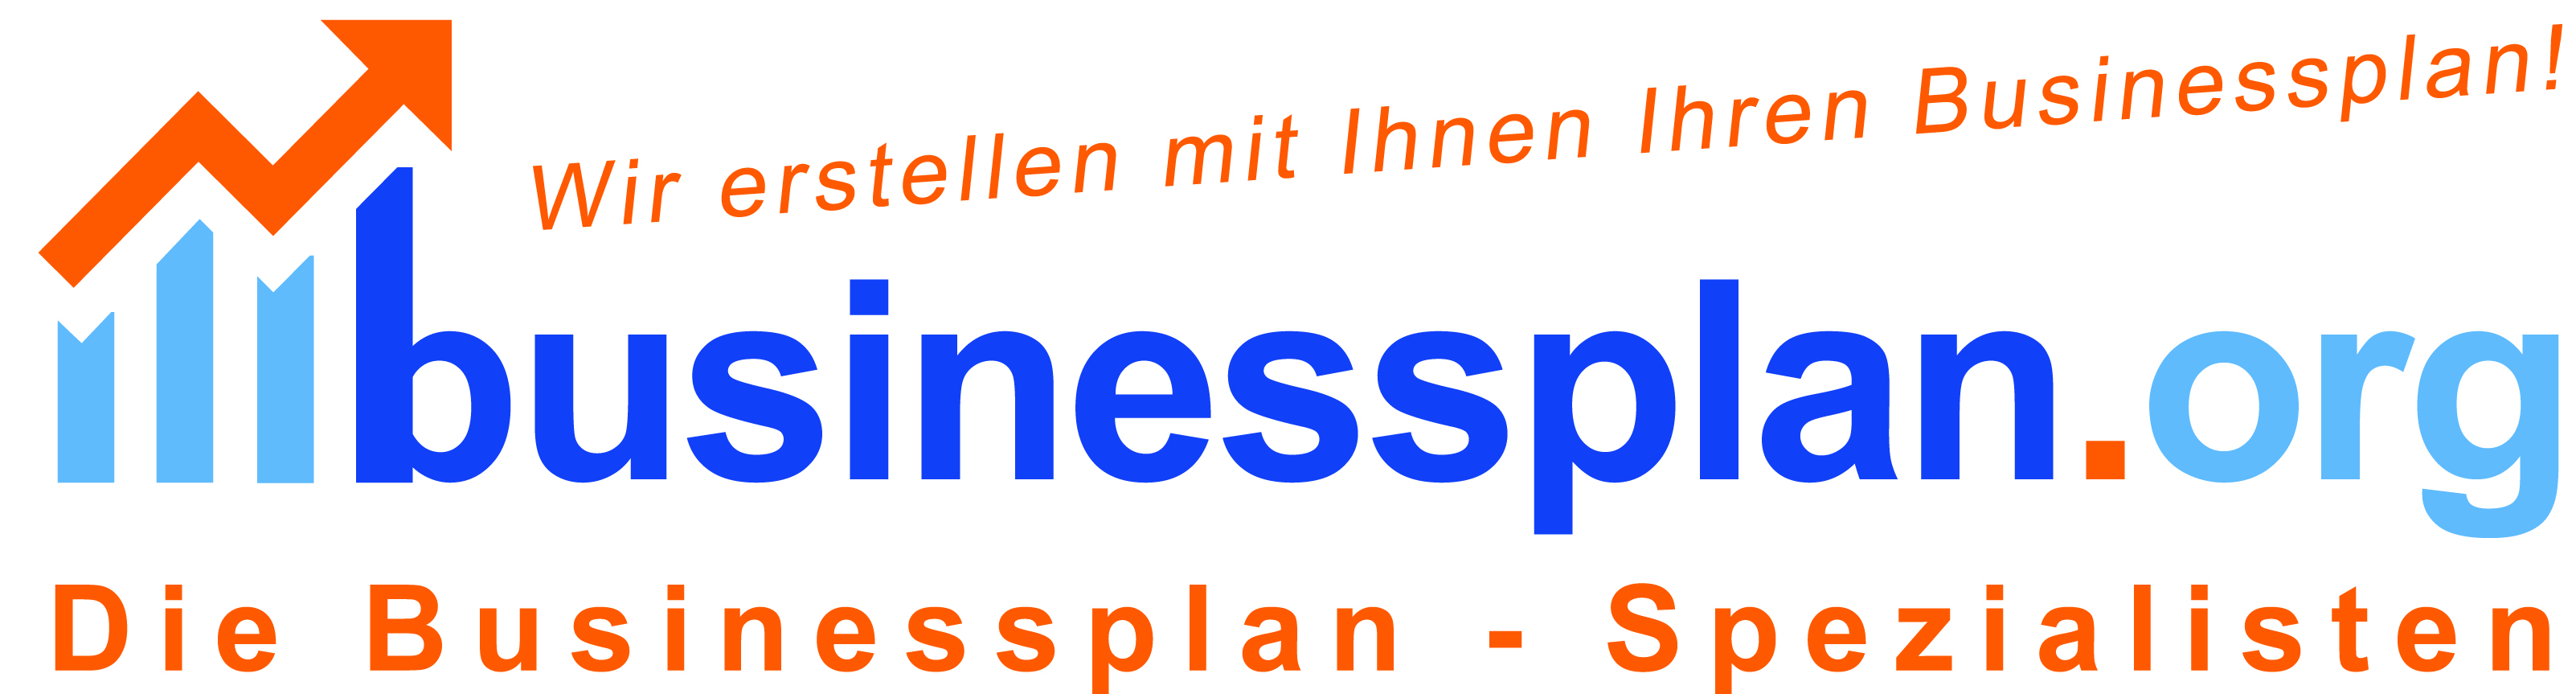 Businessplan.org – Die Businessplan-Spezialisten